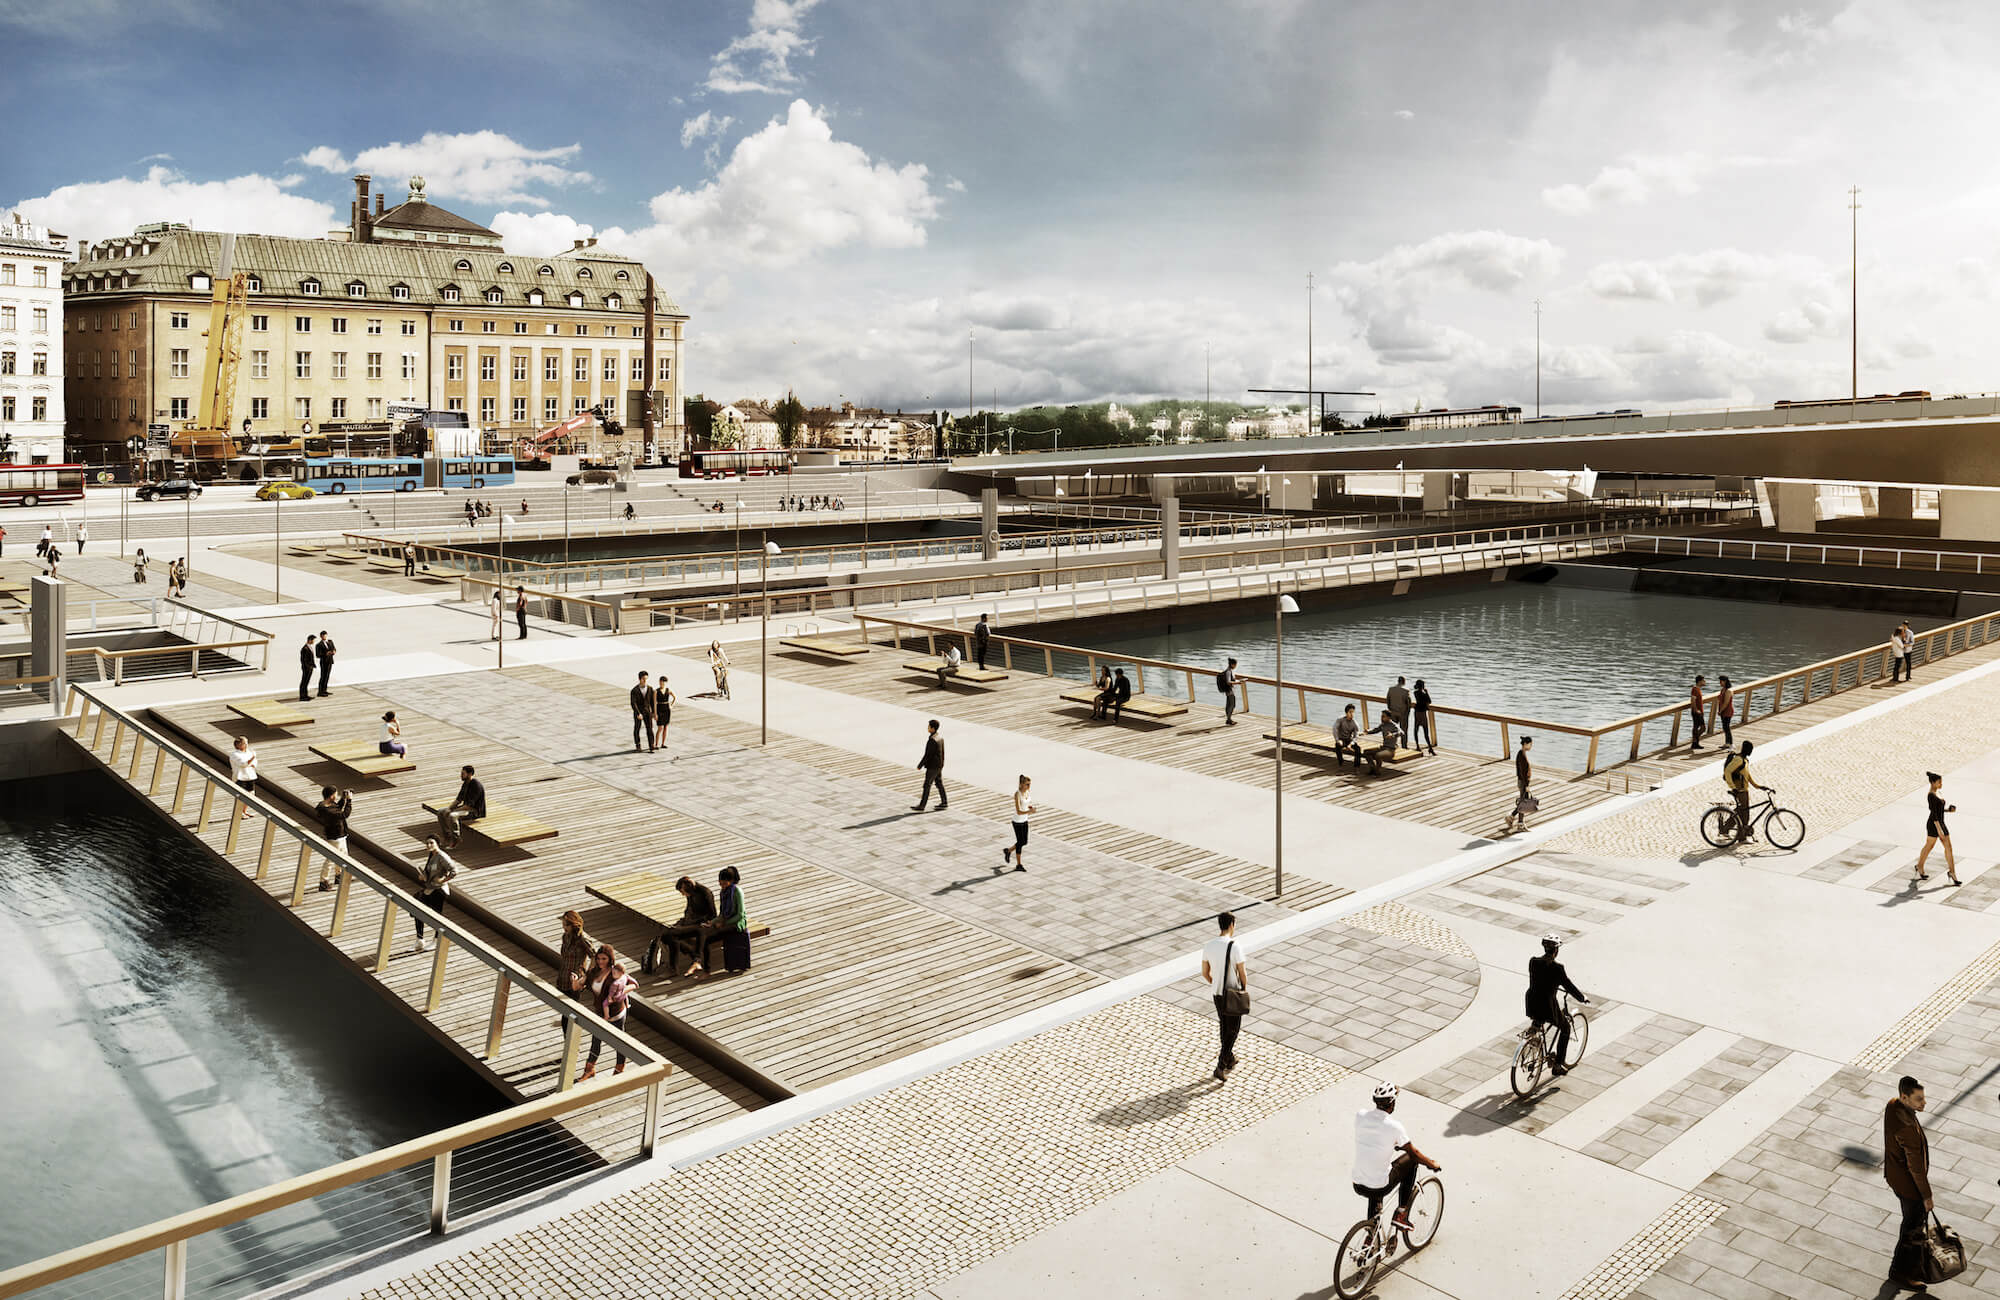 Construction digitization: new Slussen illustration